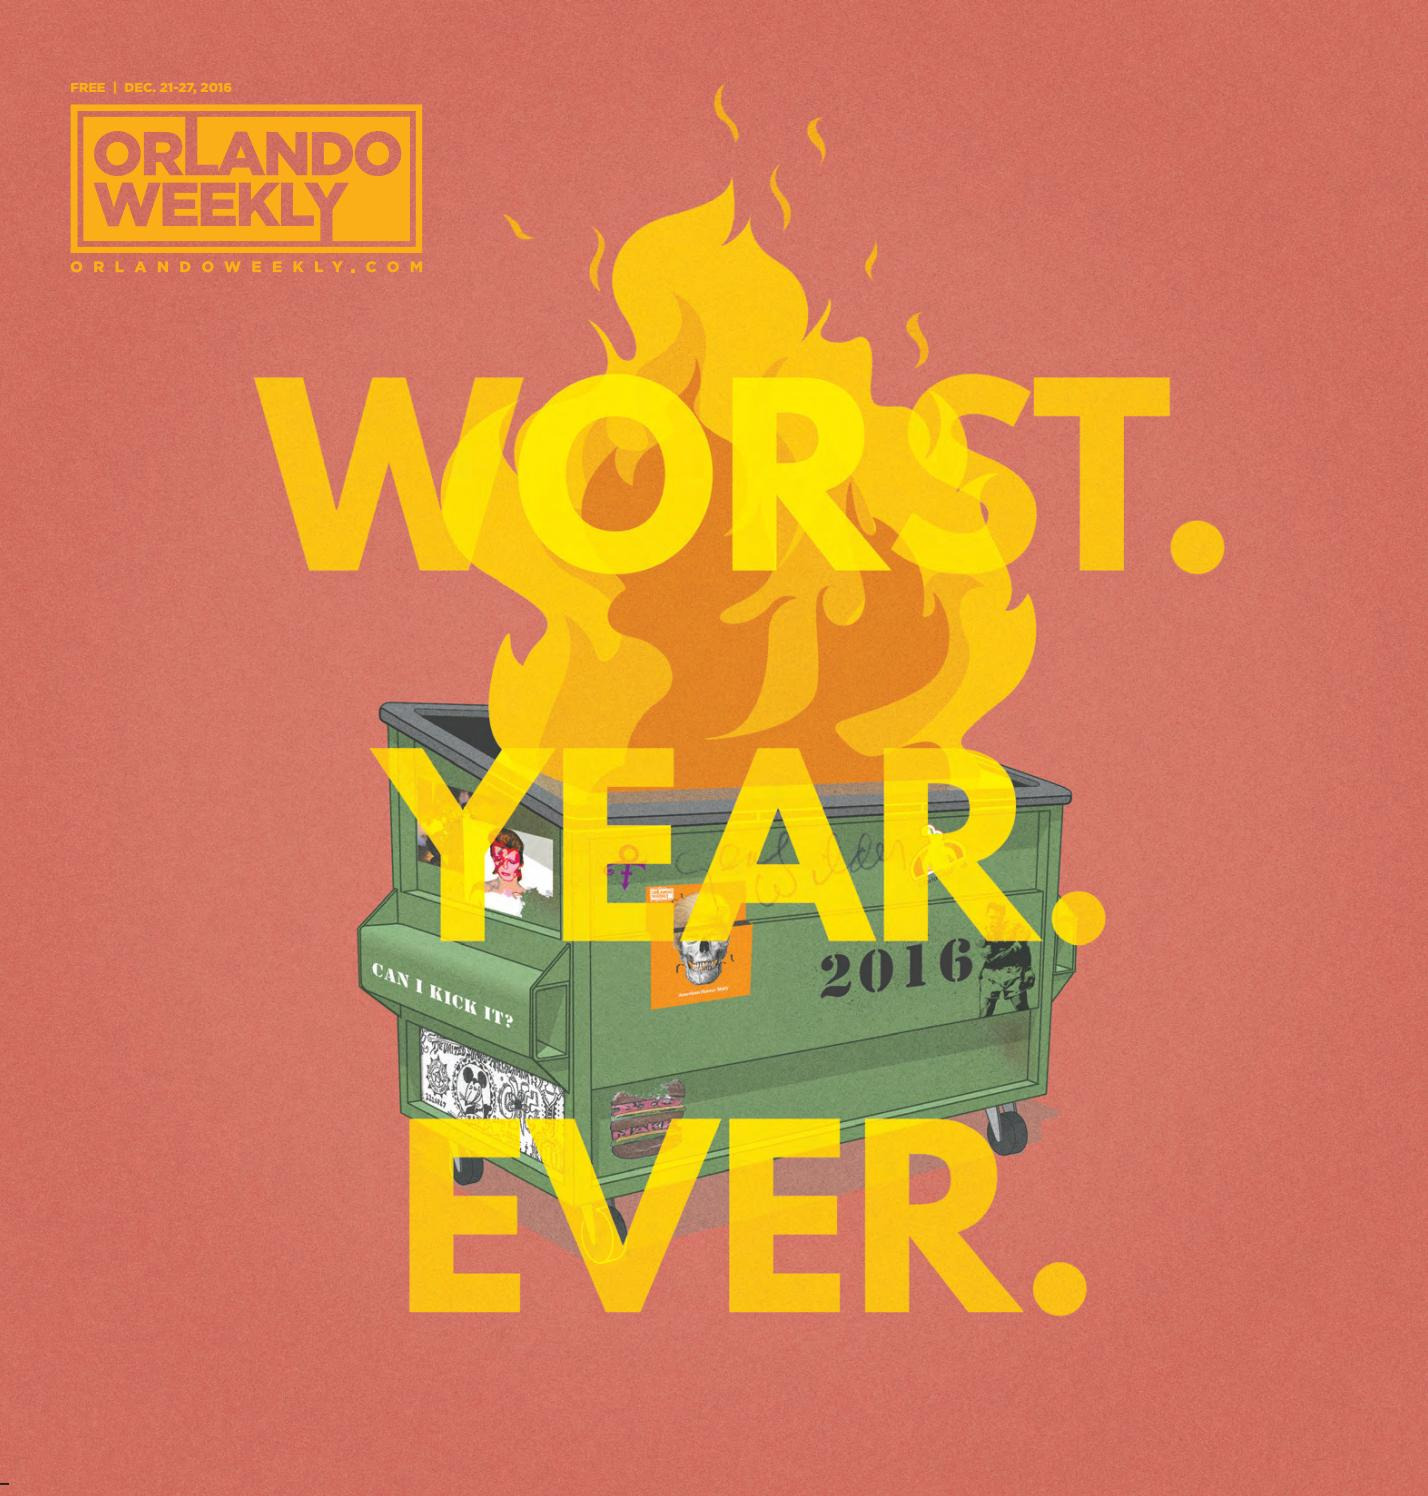 Orlando Weekly December 21, 2016 by Euclid Media Group - issuu